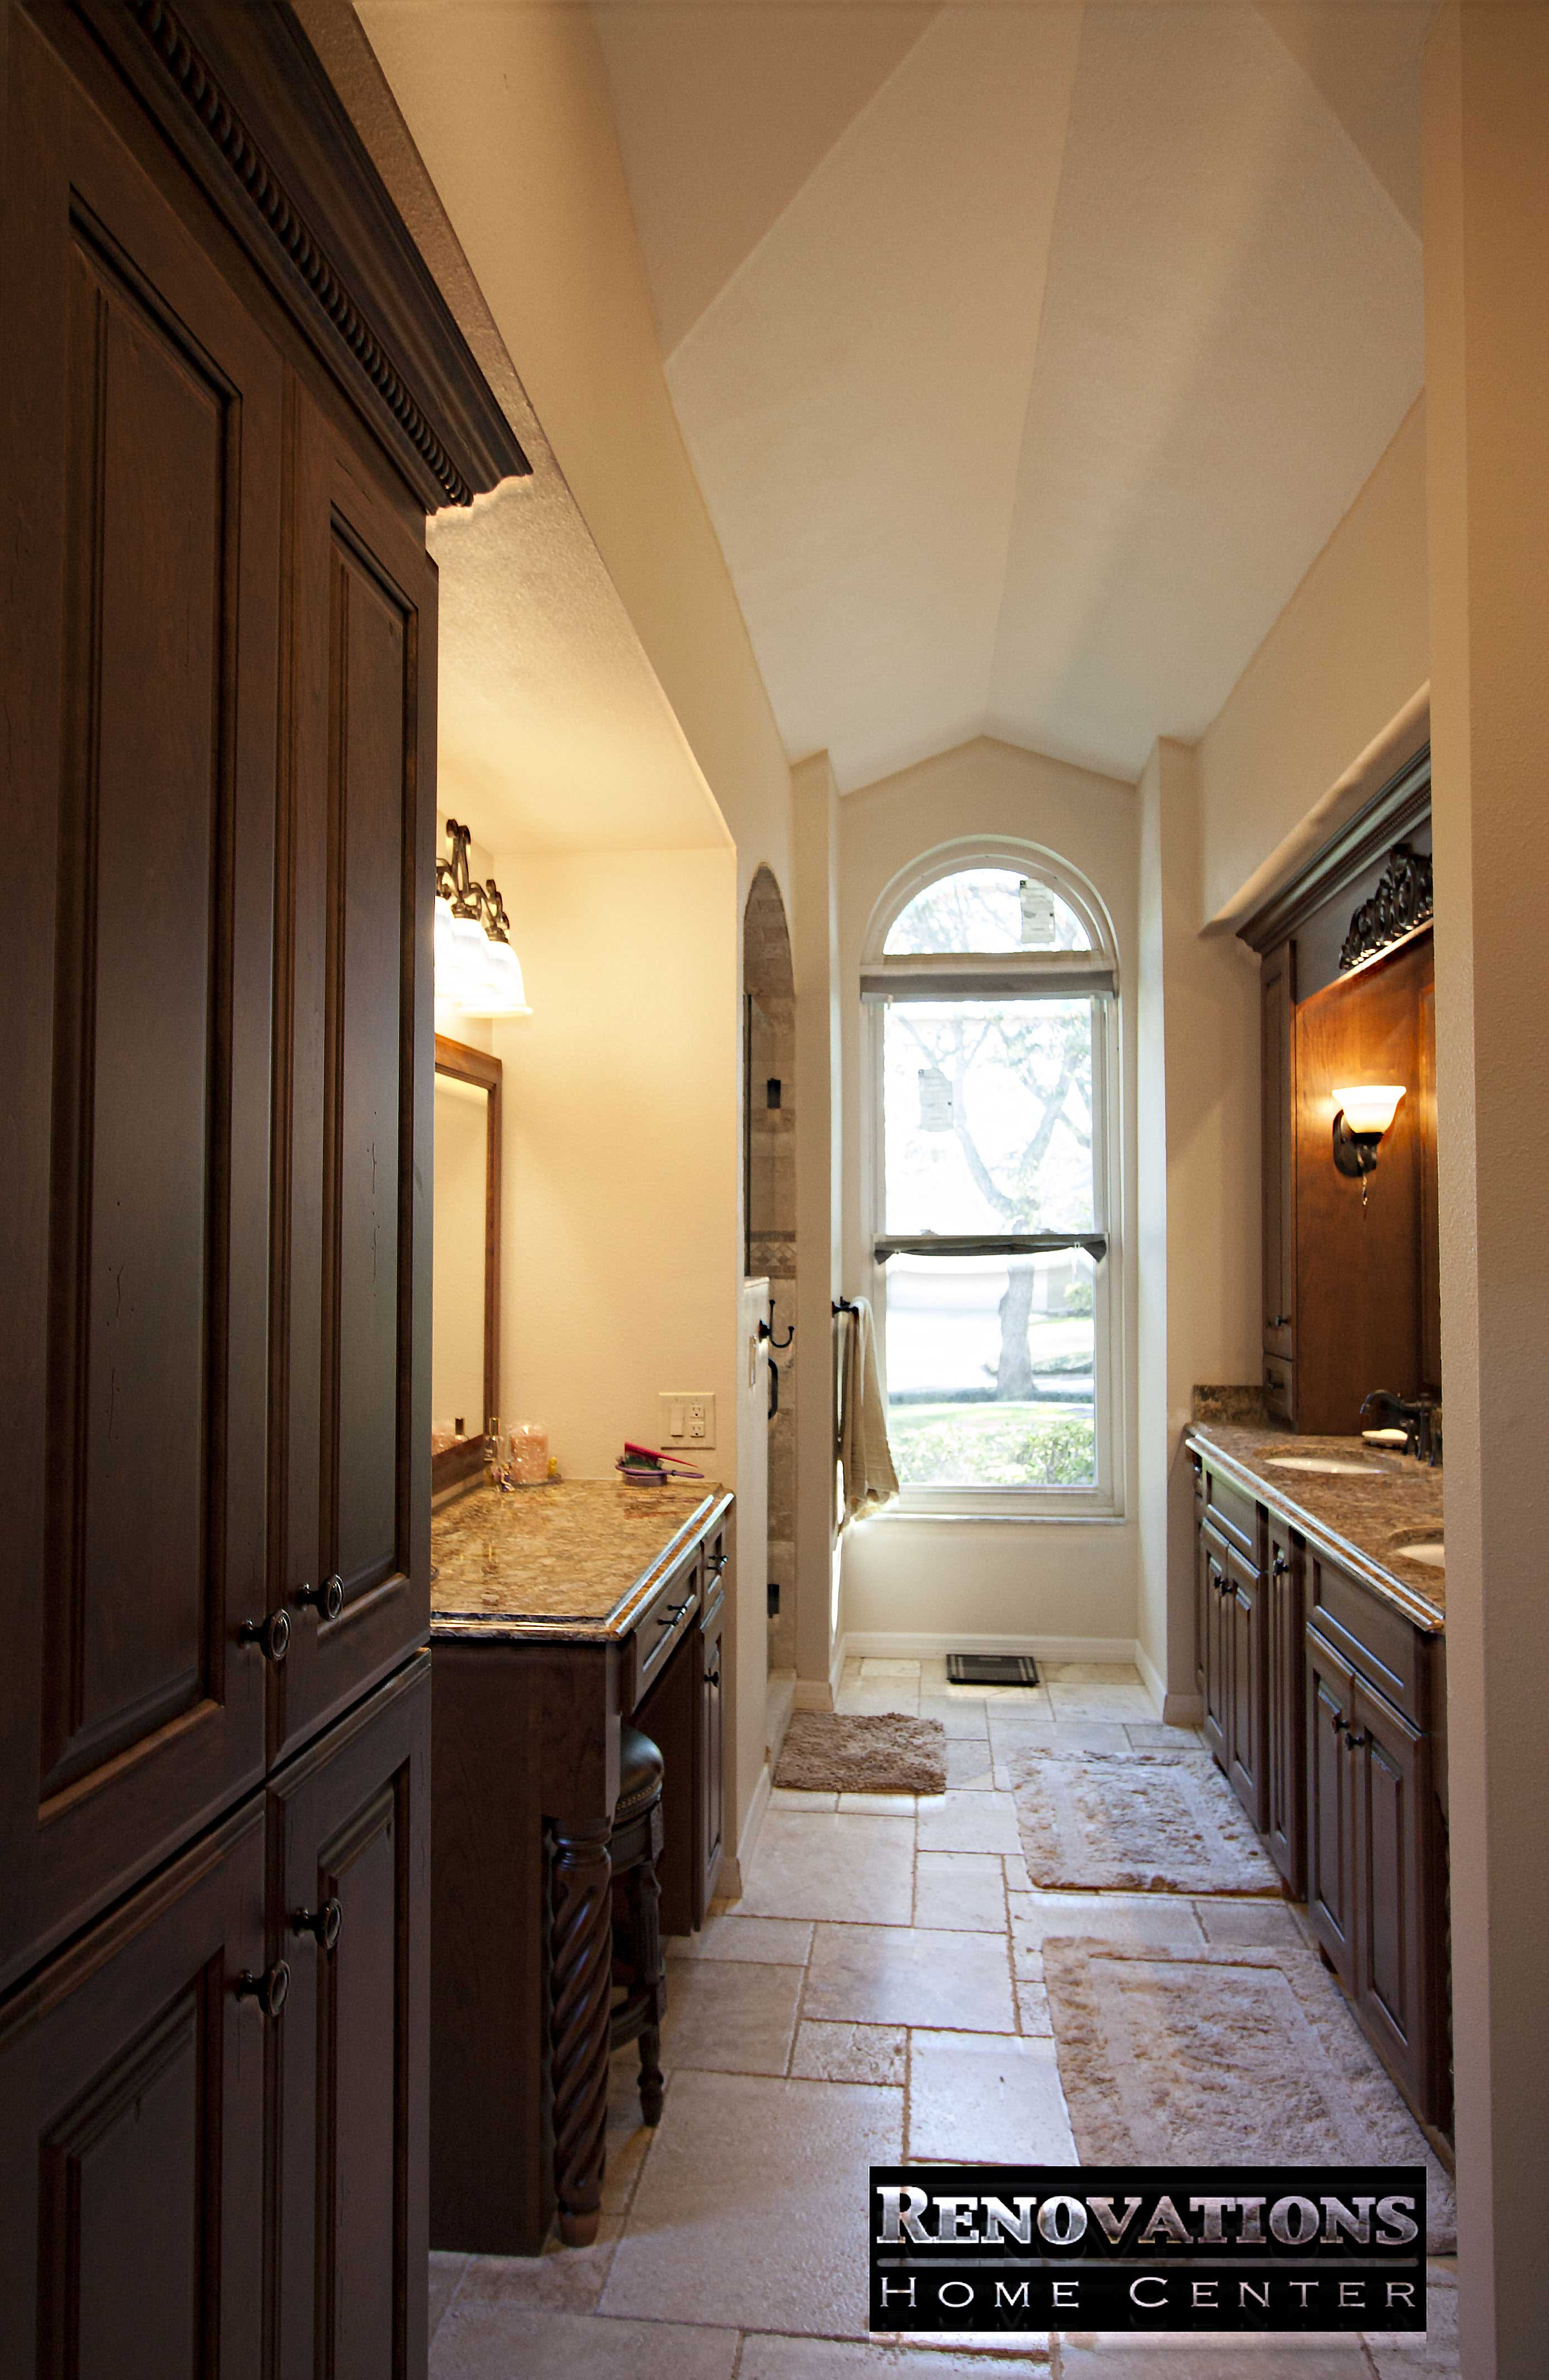 park arlington complete heights bathroom remodeling kitchen kildeer design deer serving installation studio and bath showroom illinois